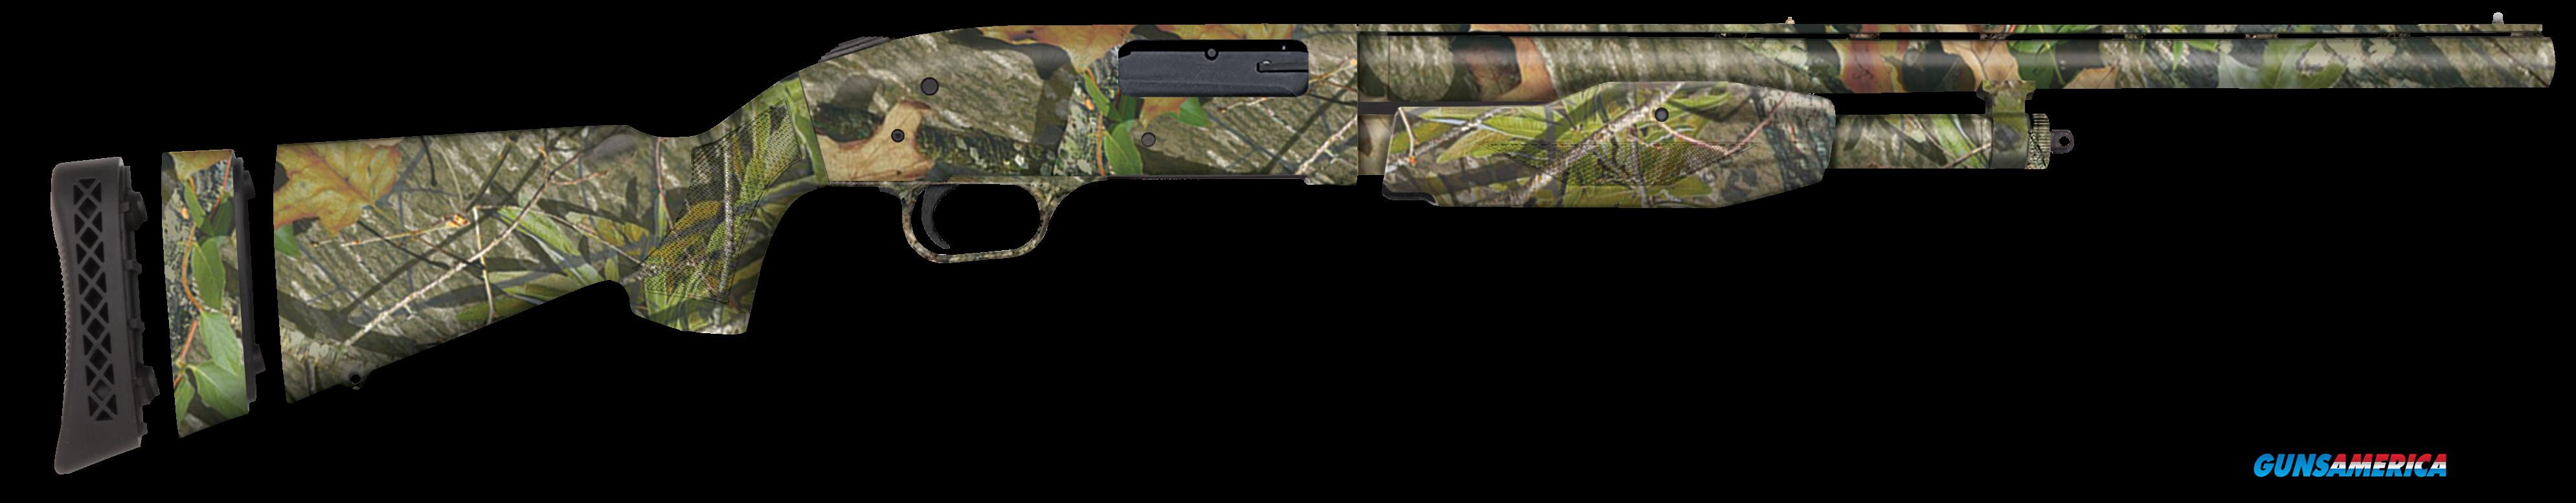 "Mossberg 50494 510 Mini Pump 20 Gauge 18.5"" 3"" Mossy Oak Obsession Synthetic Stk Mossy Oak Obsession  Guns > Shotguns > MN Misc Shotguns"